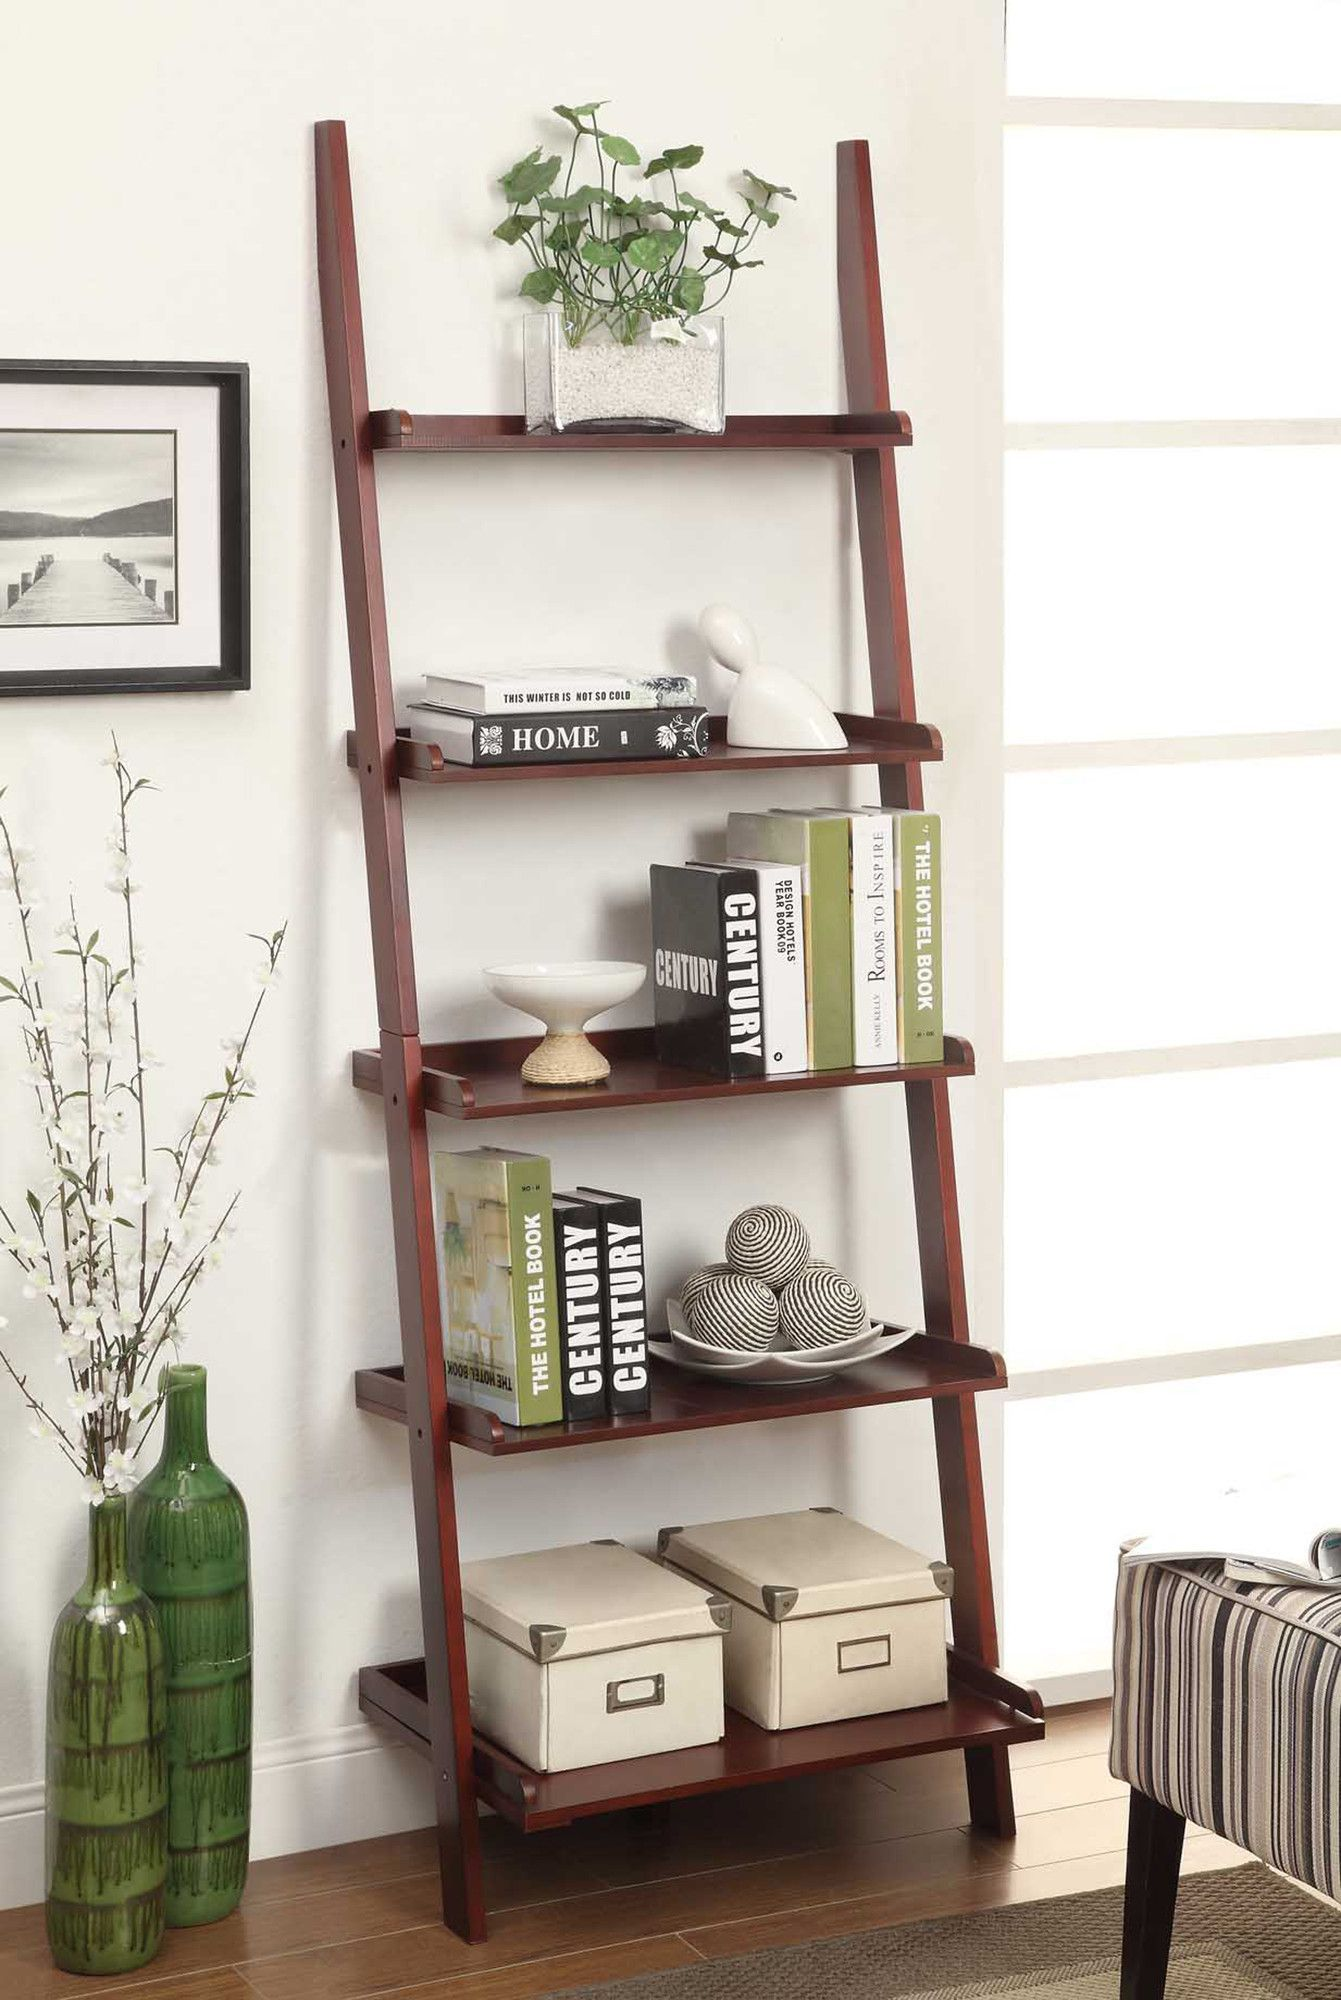 Sandstrom 72 Ladder Bookcase Ladder Bookshelf Bookshelf Decor Home Decor